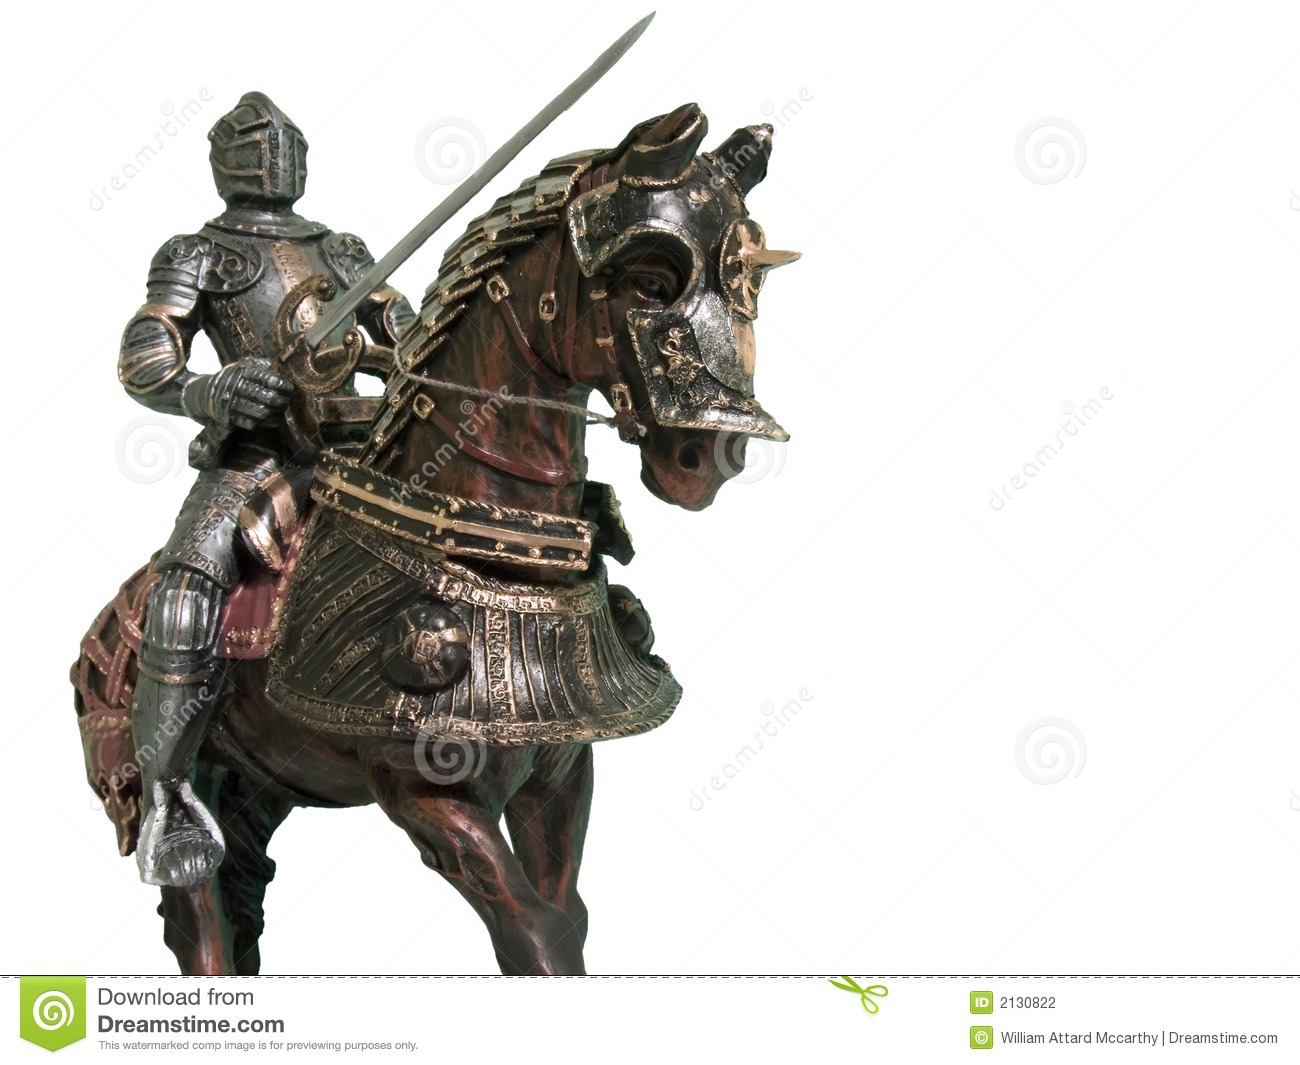 Shield design set royalty free stock photos image 5051988 - Knight On Horseback Stock Photography Image 2130822